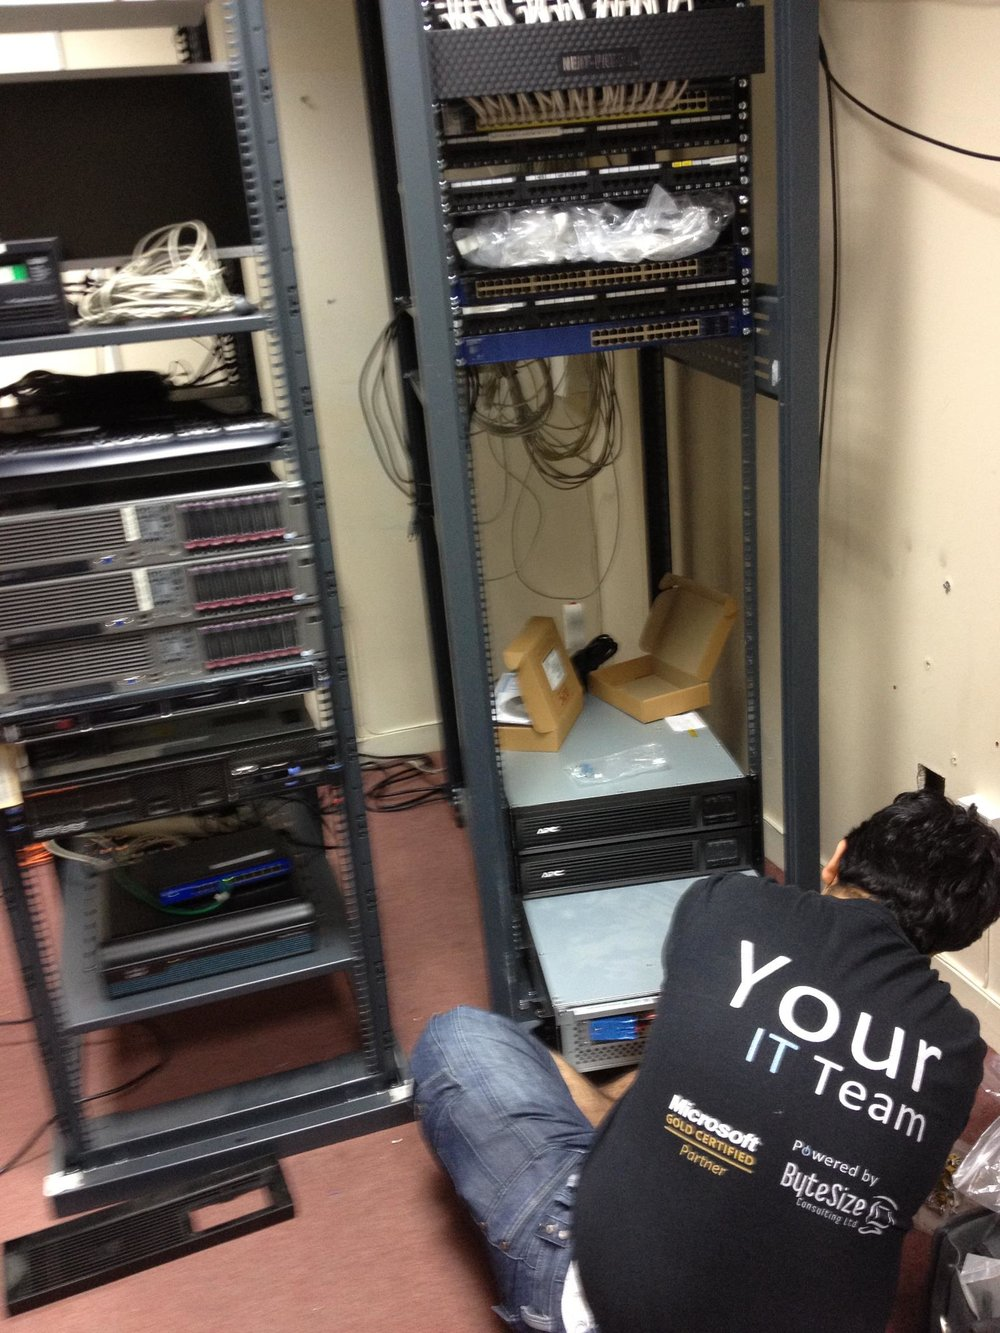 Major server room restructuring for a Pharmaceutical client